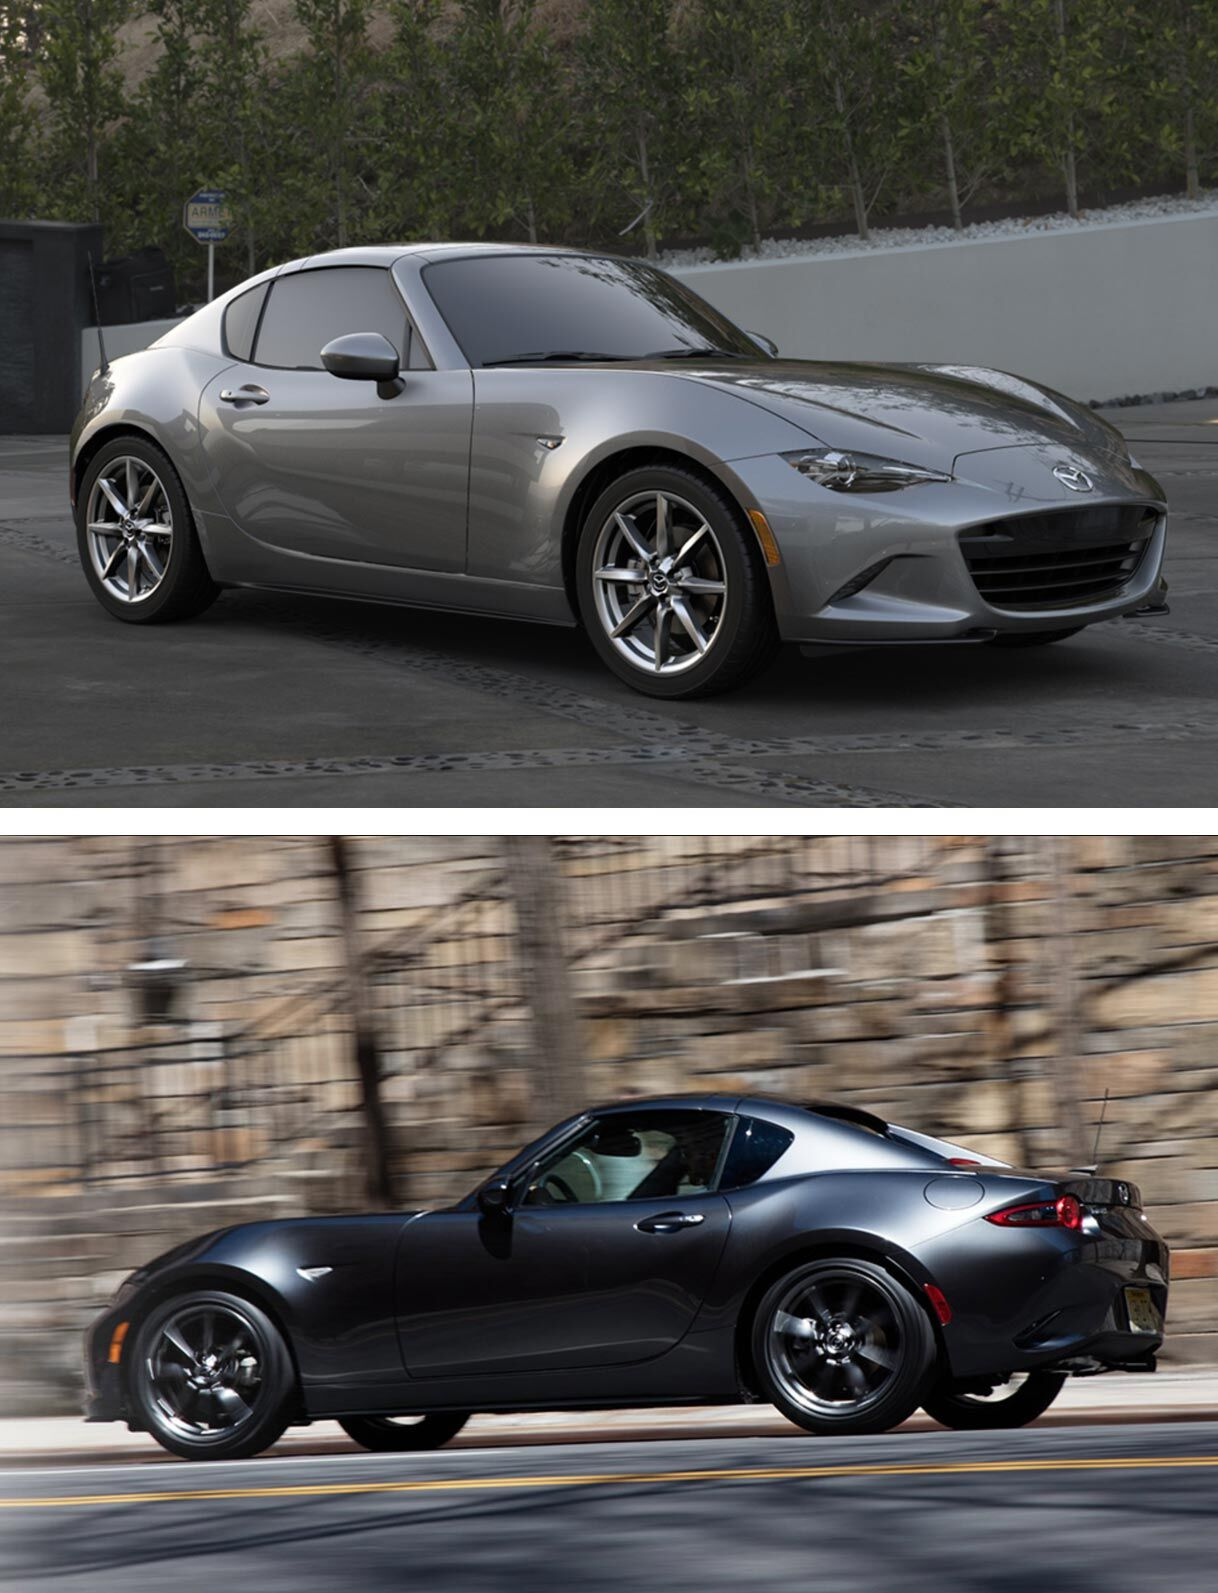 2019 Mazda MX-5 Miata & Miata RF Trim Comparison